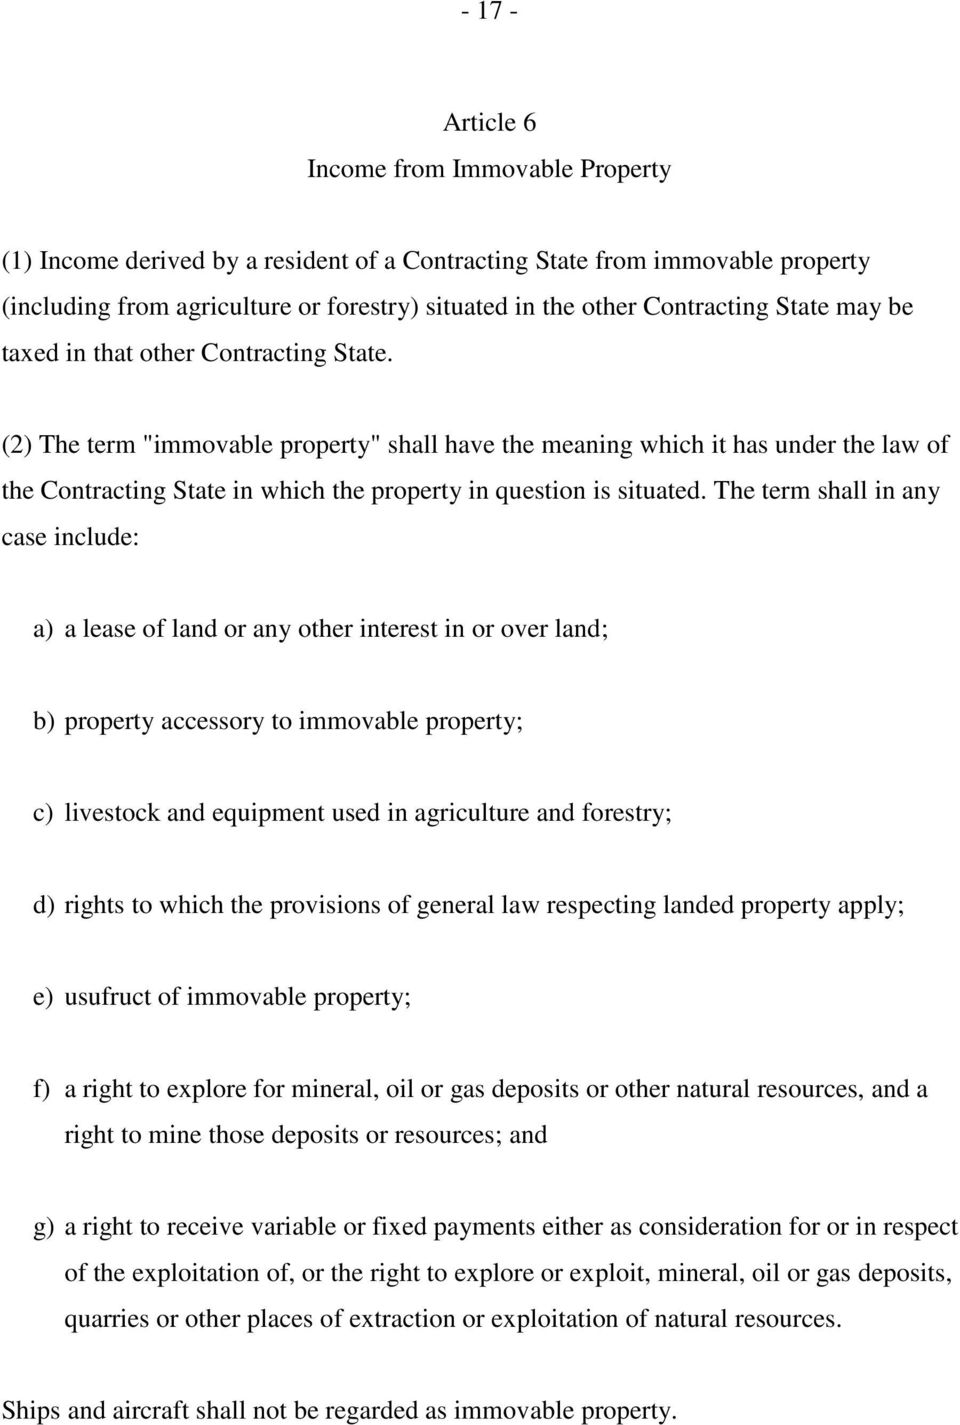 "(2) The term ""immovable property"" shall have the meaning which it has under the law of the Contracting State in which the property in question is situated."